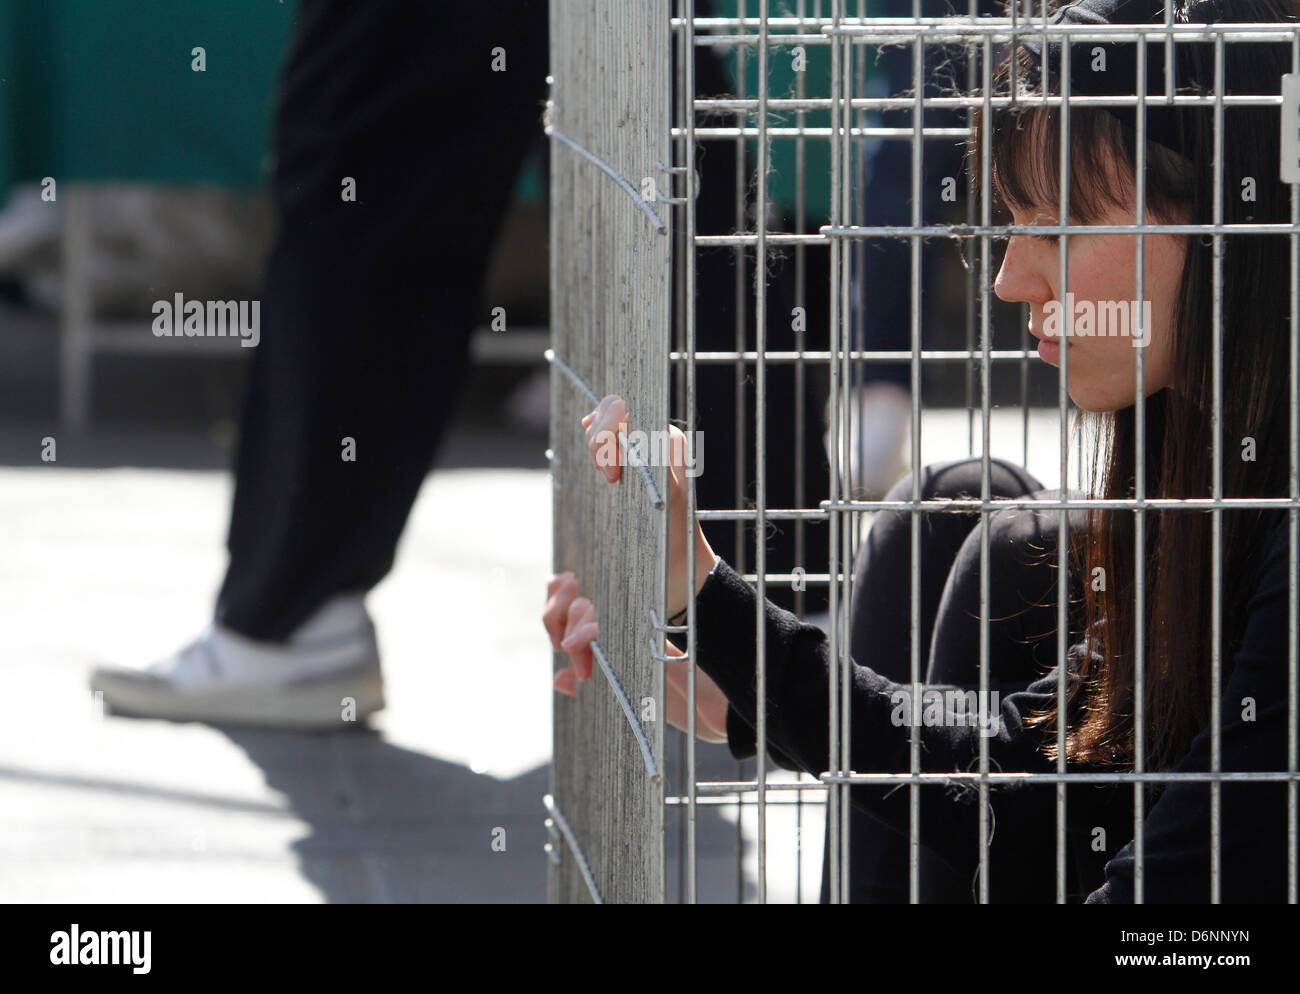 Activists enclosed in a cage are seen during a street performance - Stock Image